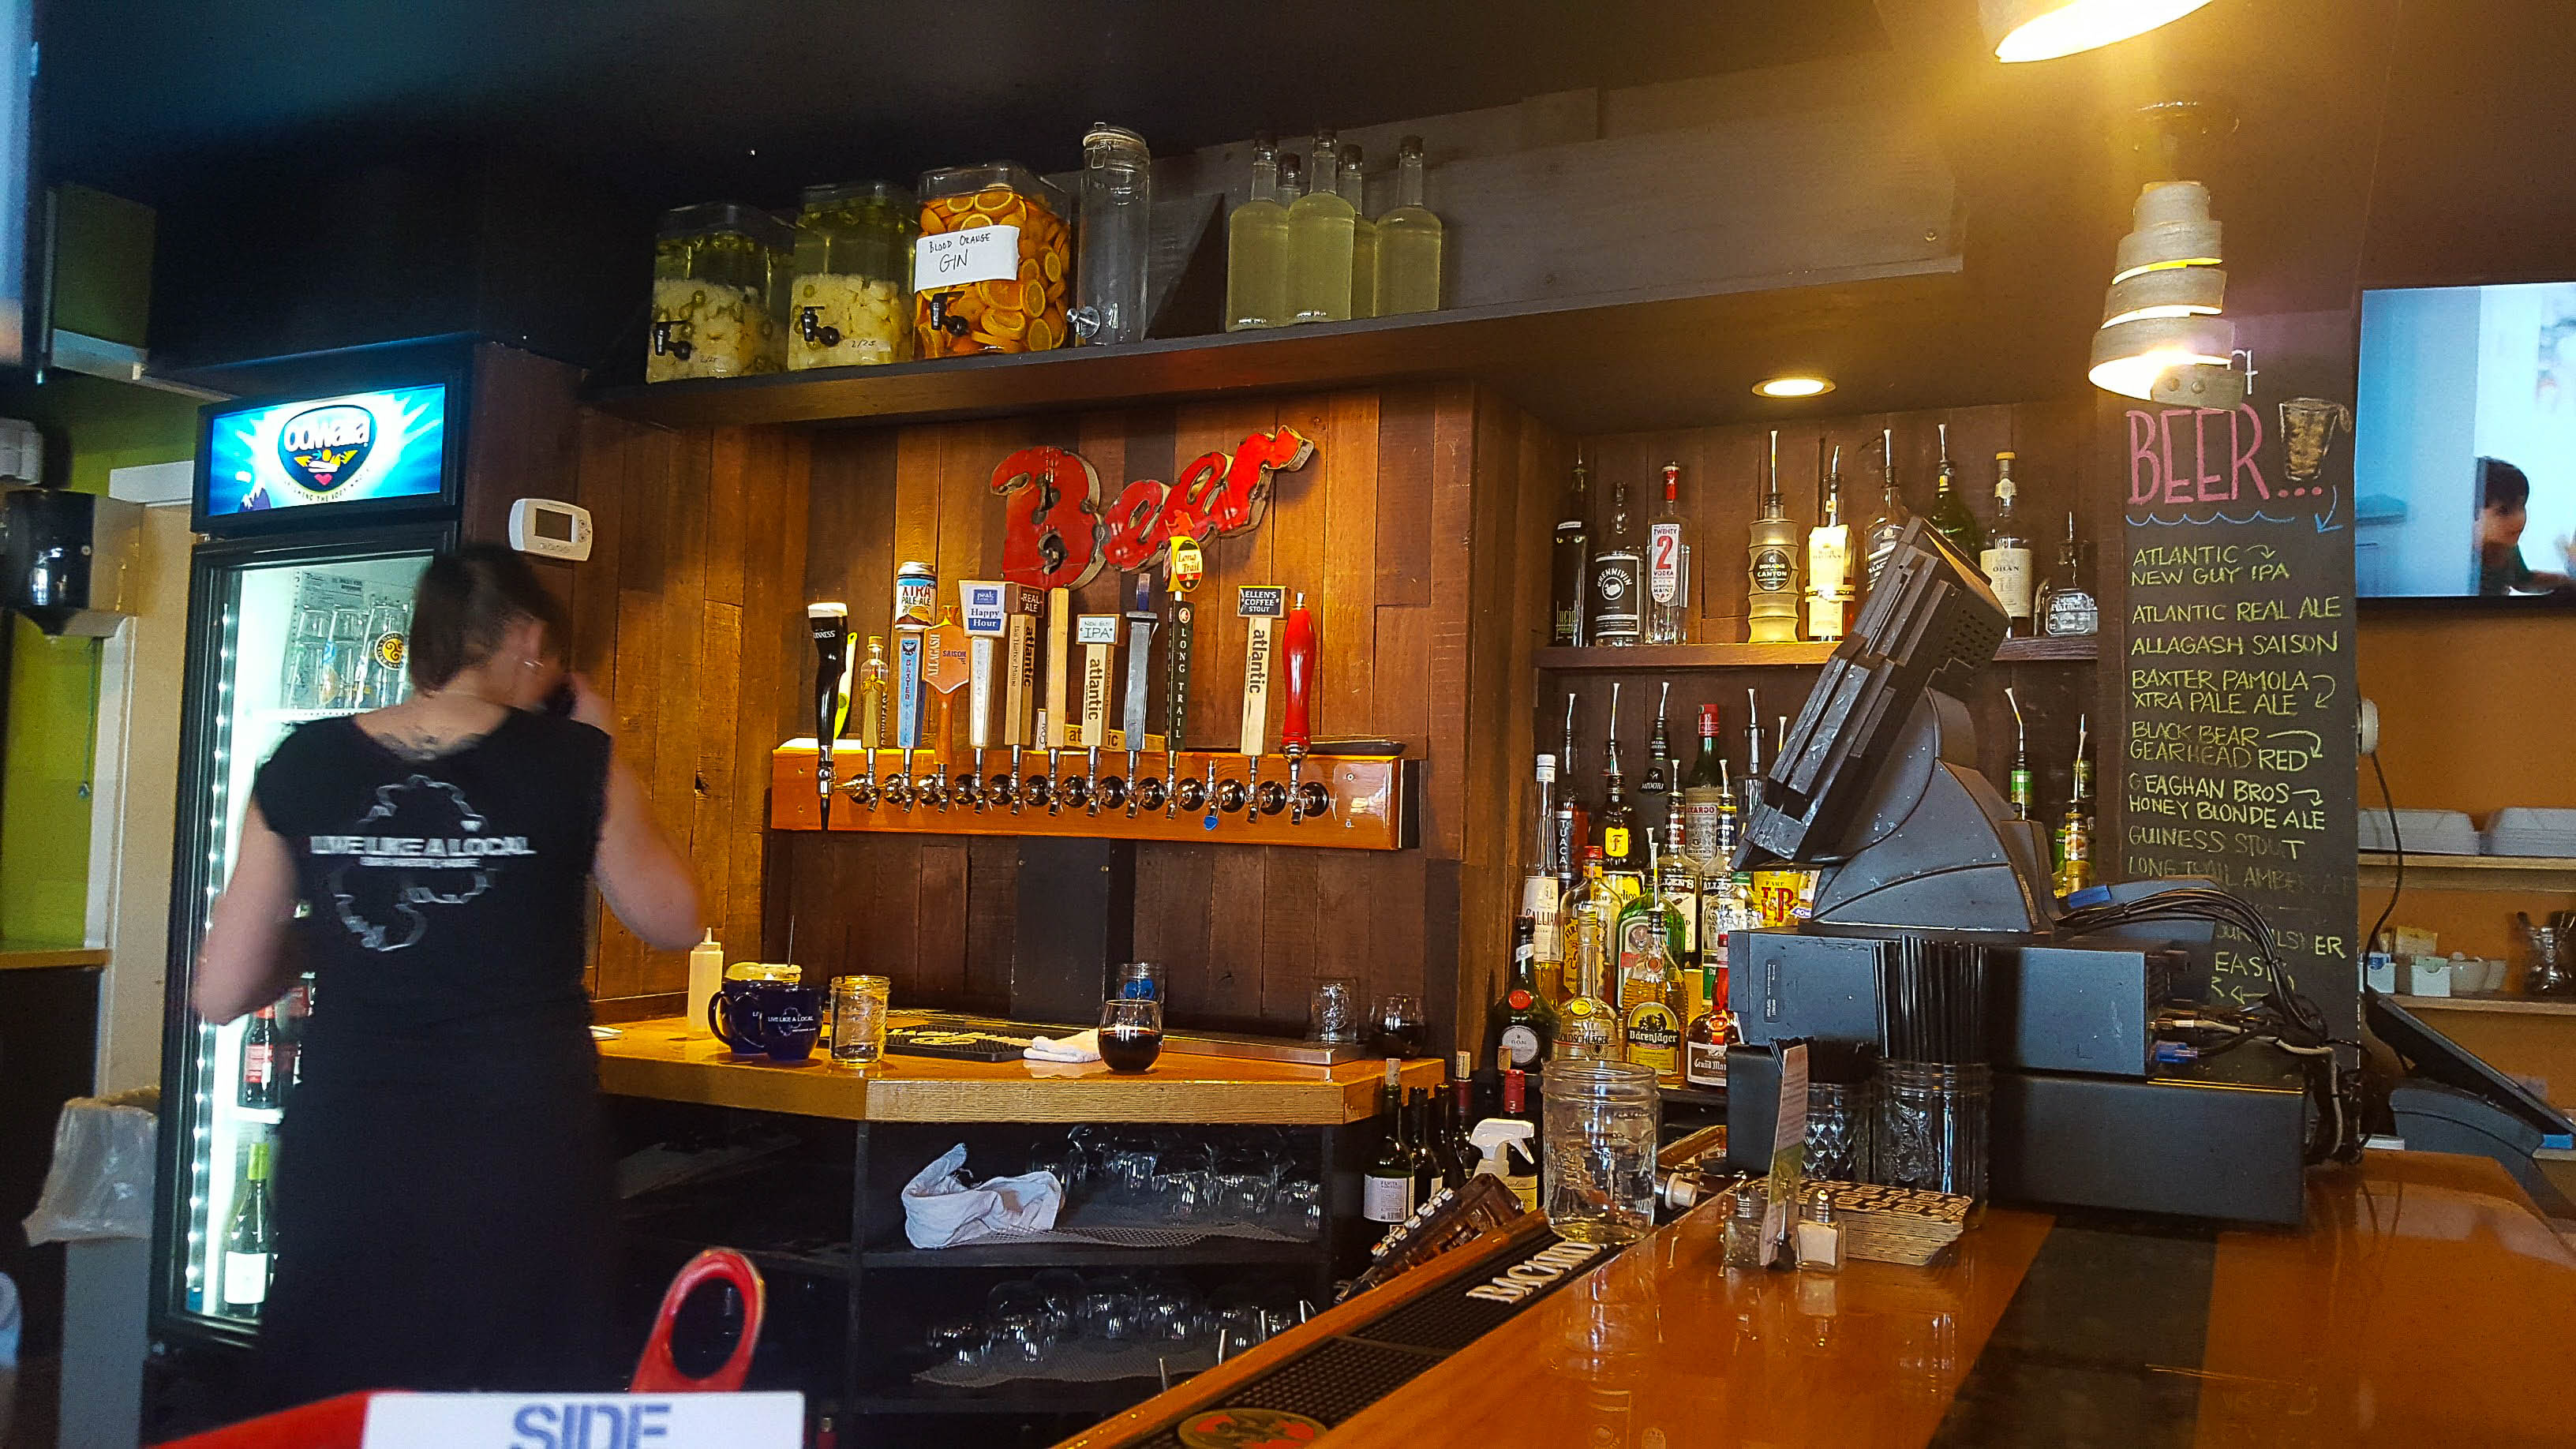 SIde Street Cafe Bar Harbor, Happy Hour in Bar Harbor, Acadia National Park places to eat